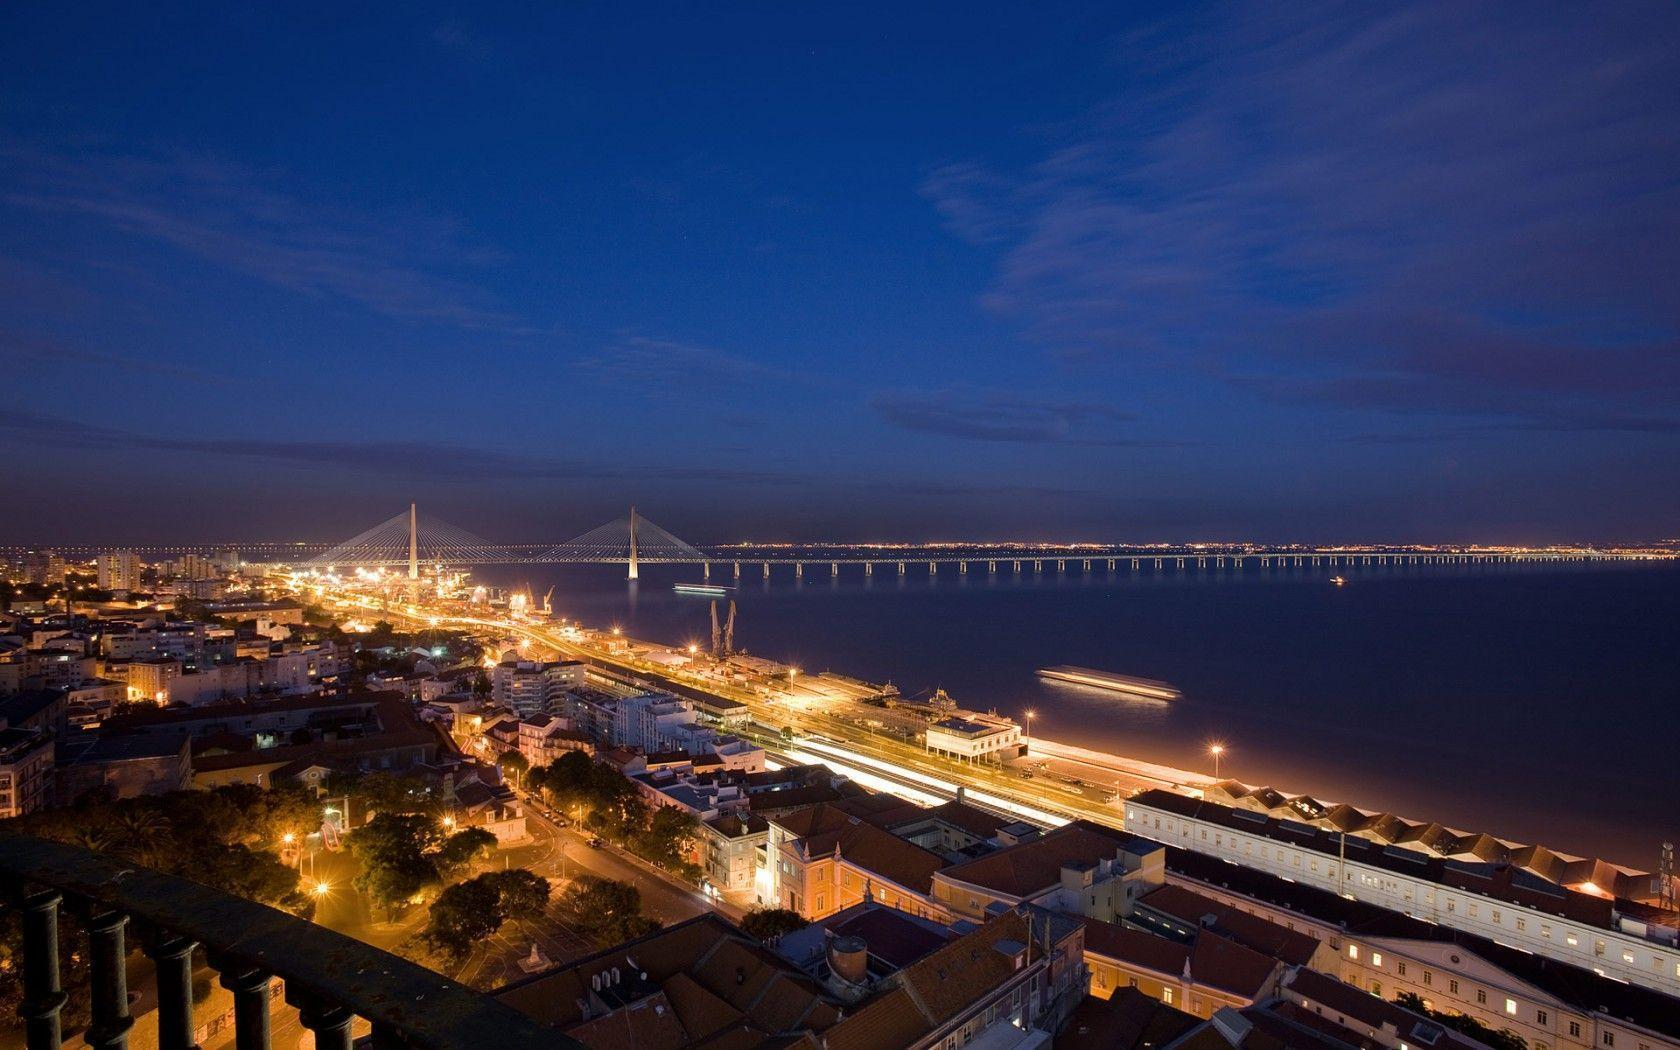 Nocturna New Lisbon Bridge Wallpapers | HD Wallpapers